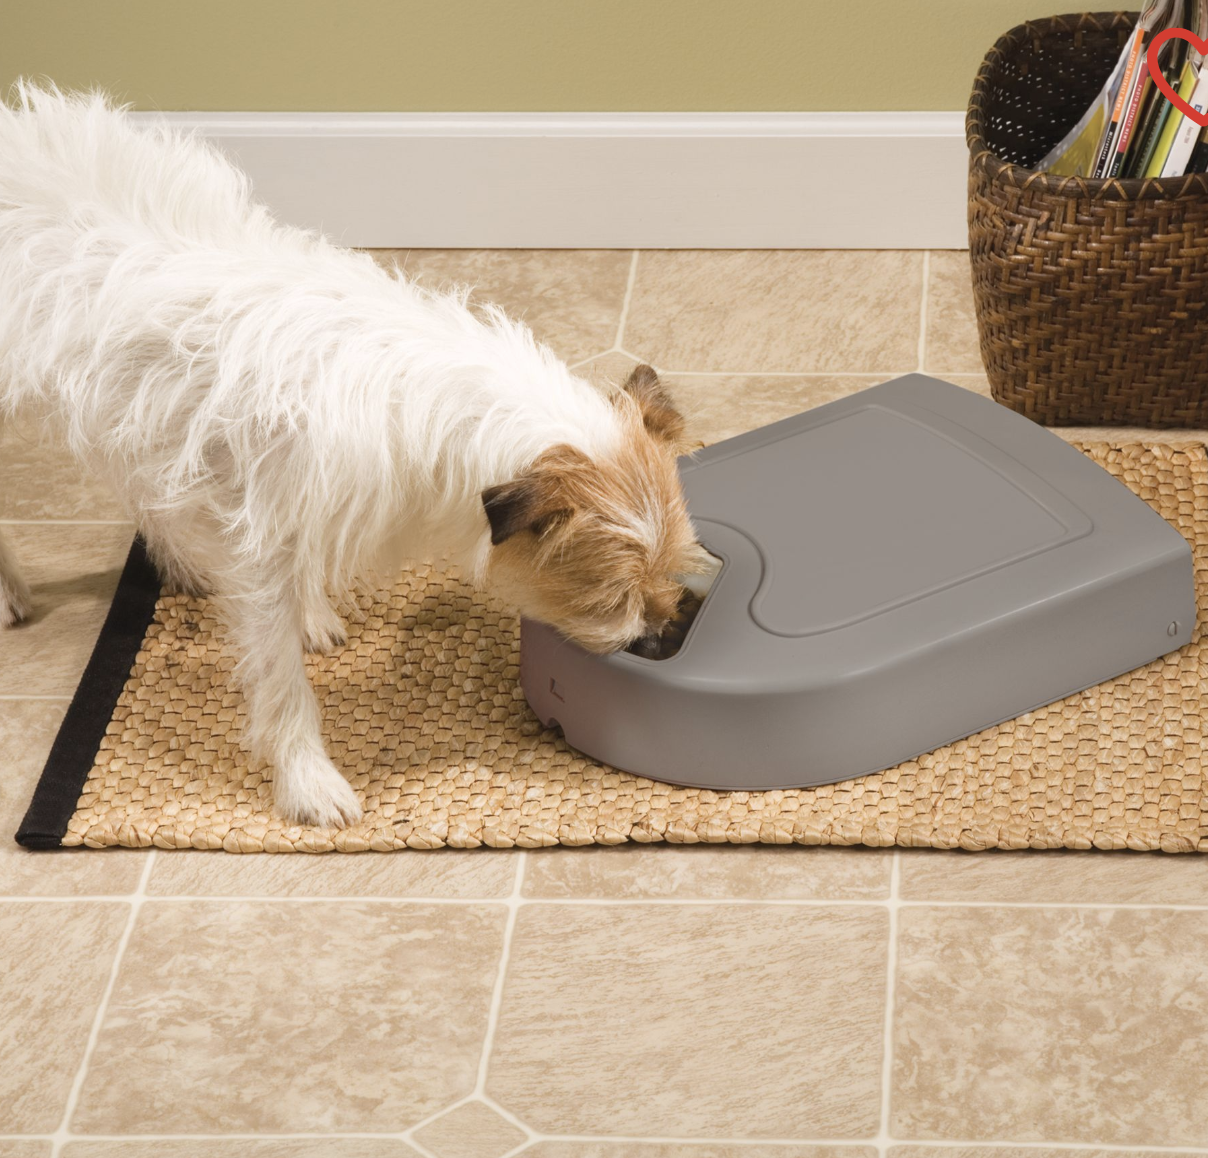 A dog eating out of a gray food dispenser on the floor